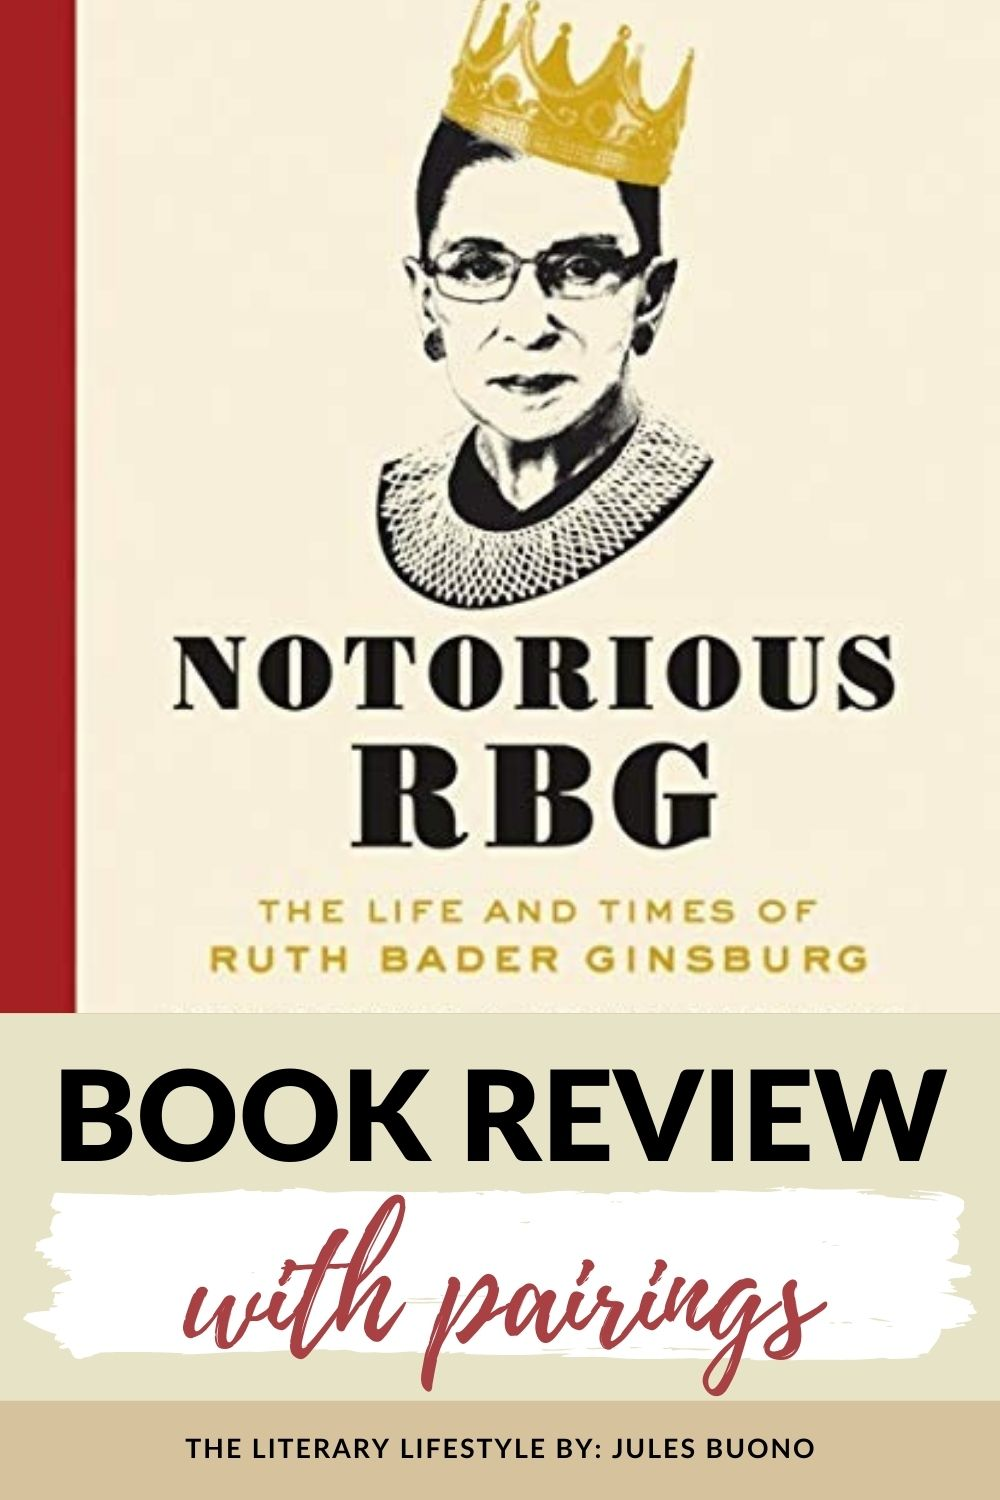 Book Review: Notorious RBG